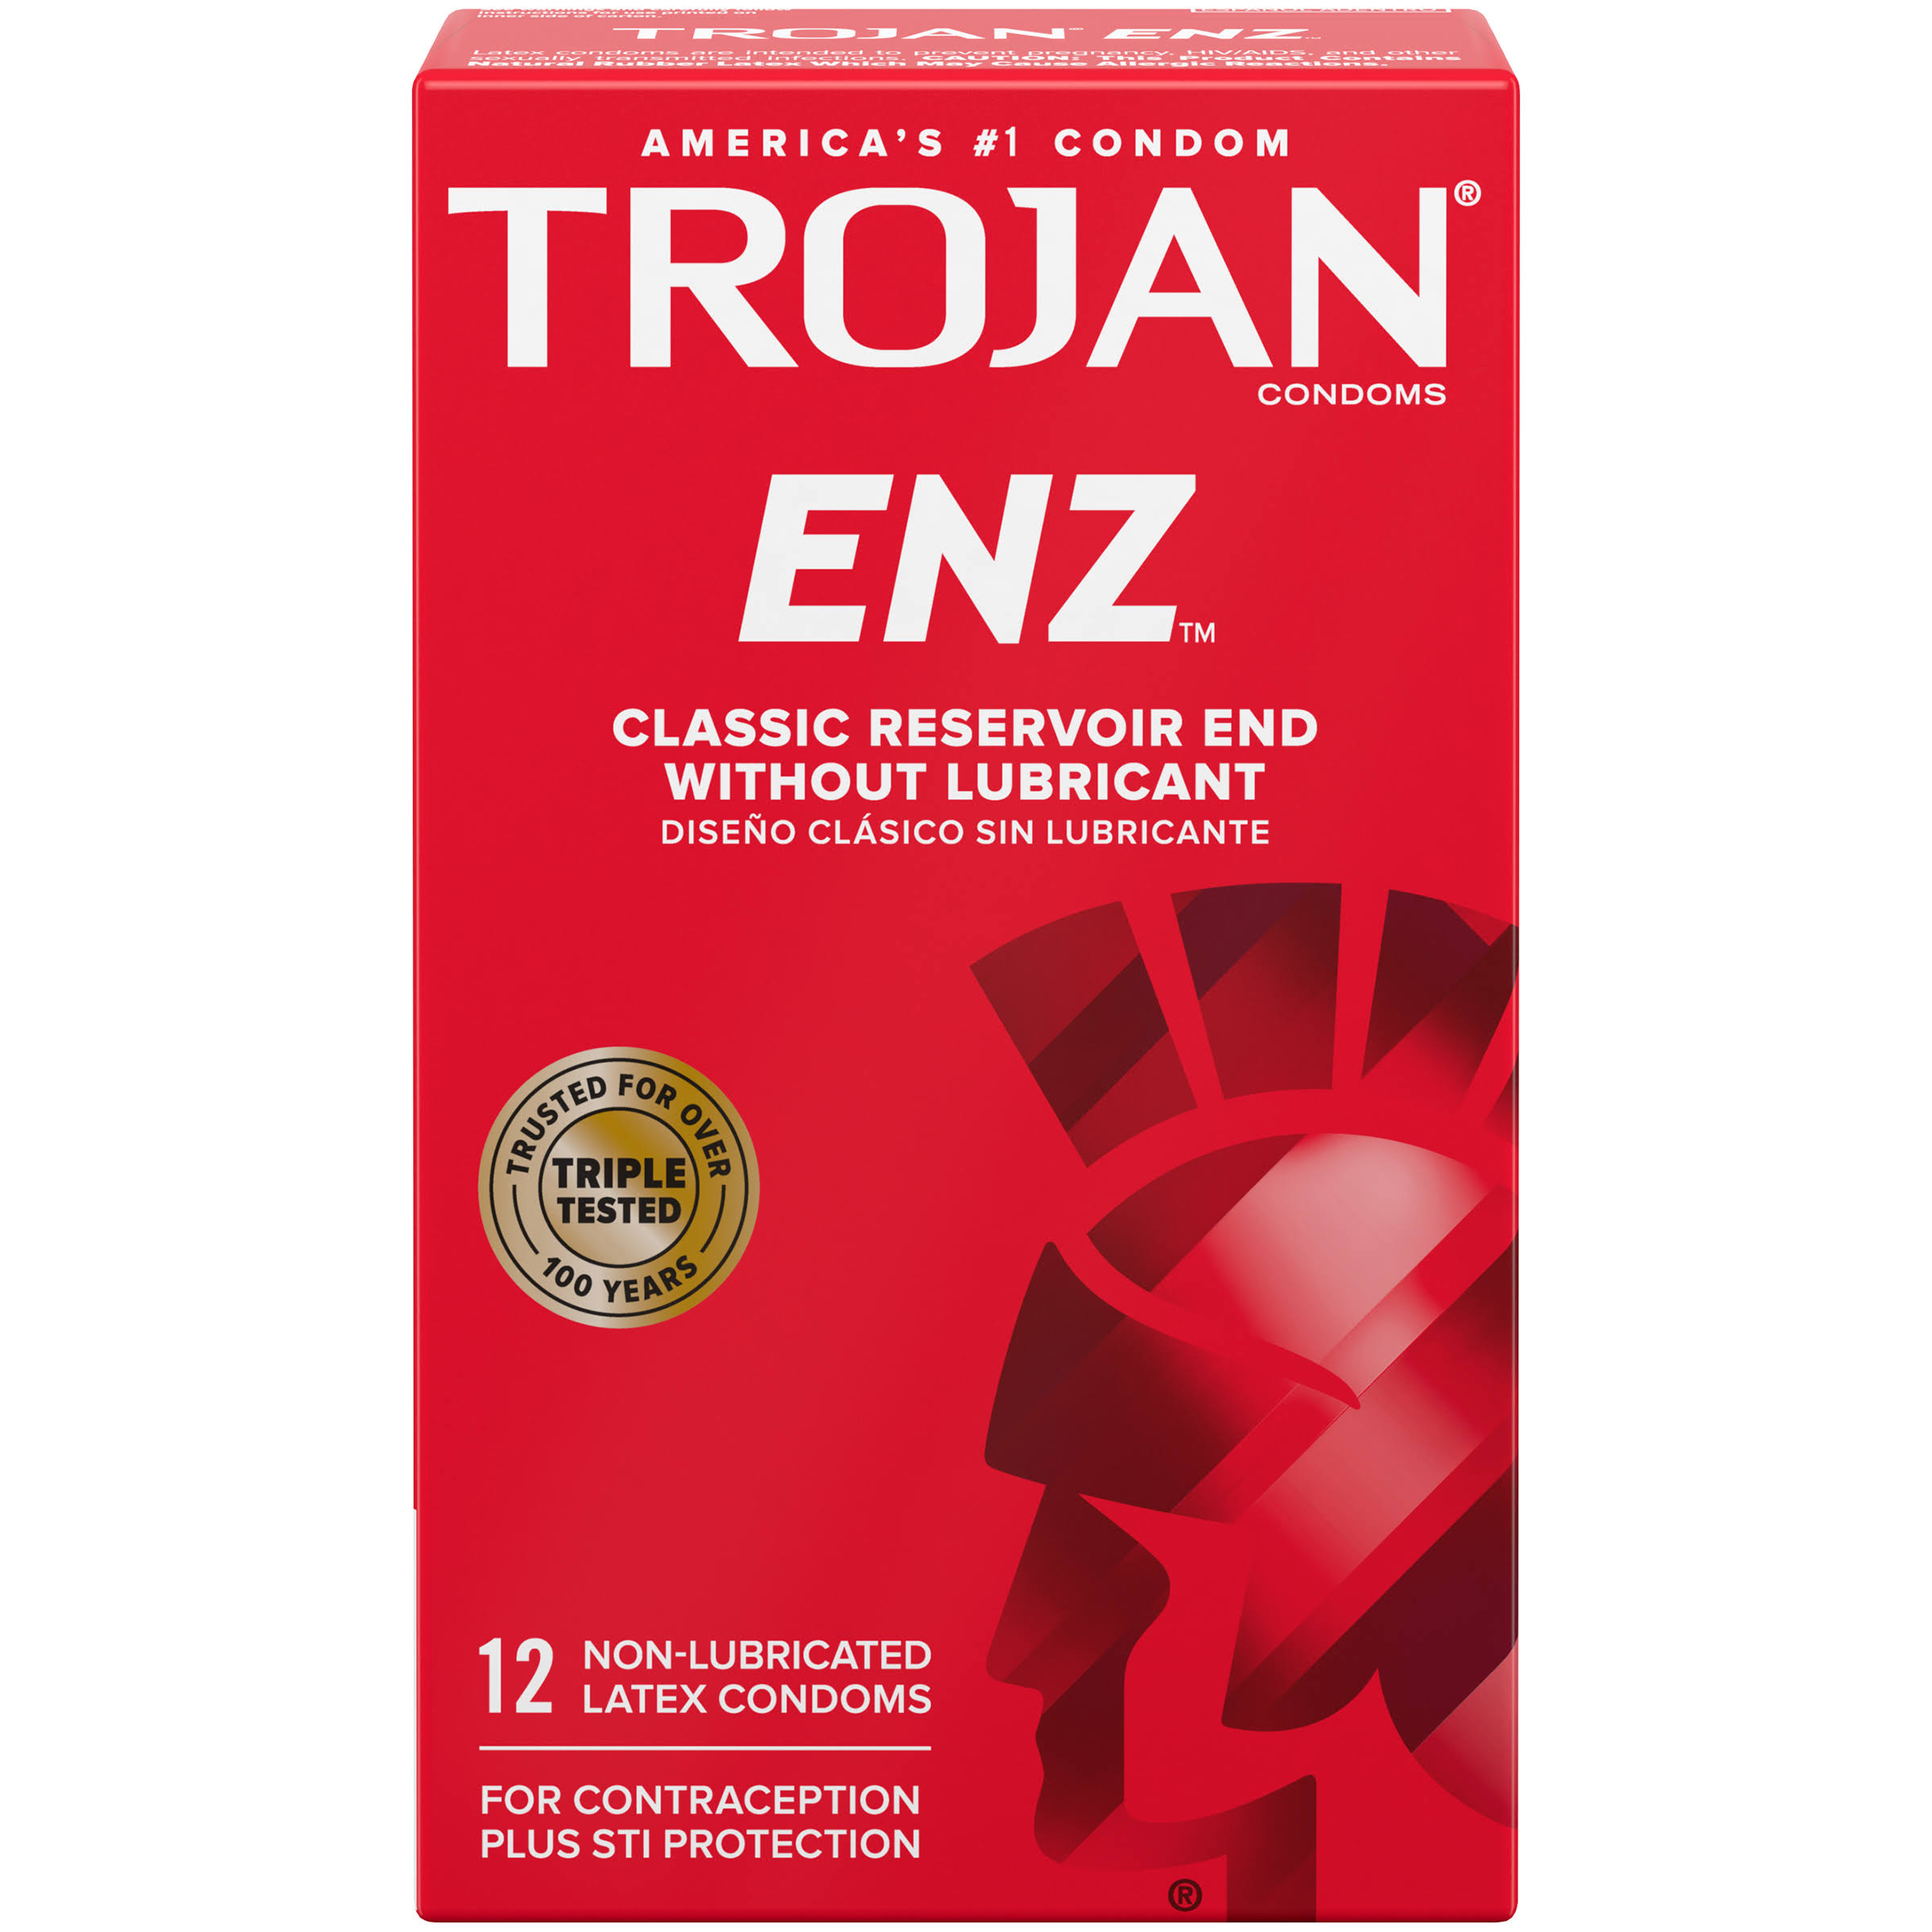 Trojan ENZ Non-Lubricated Condoms - 12 Pack